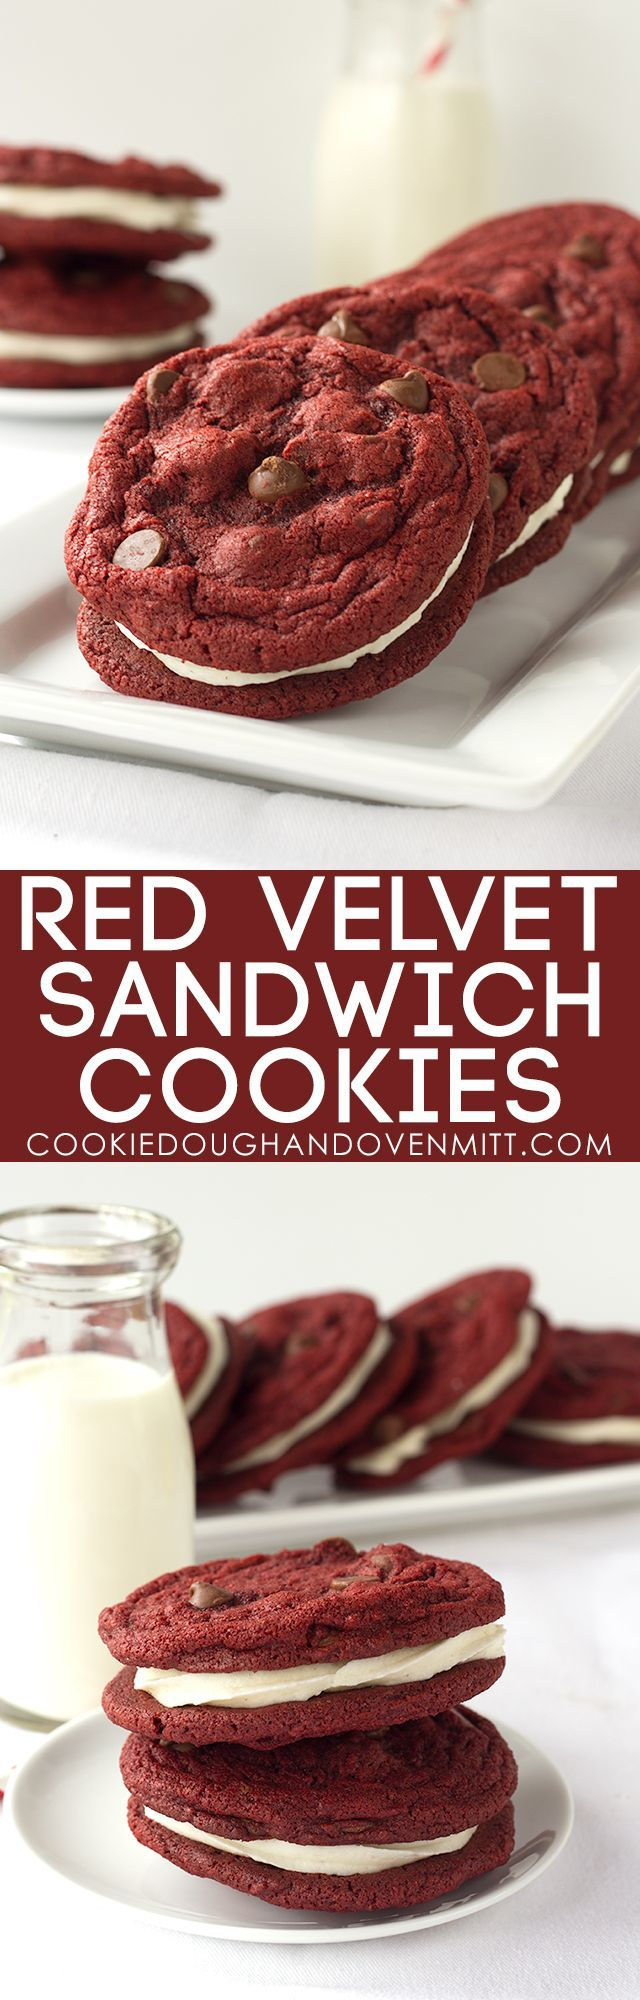 Red Velvet Sandwich Cookies - Chewy red velvet chocolate chip cookies stuffed with a fluffy cream cheese frosting.